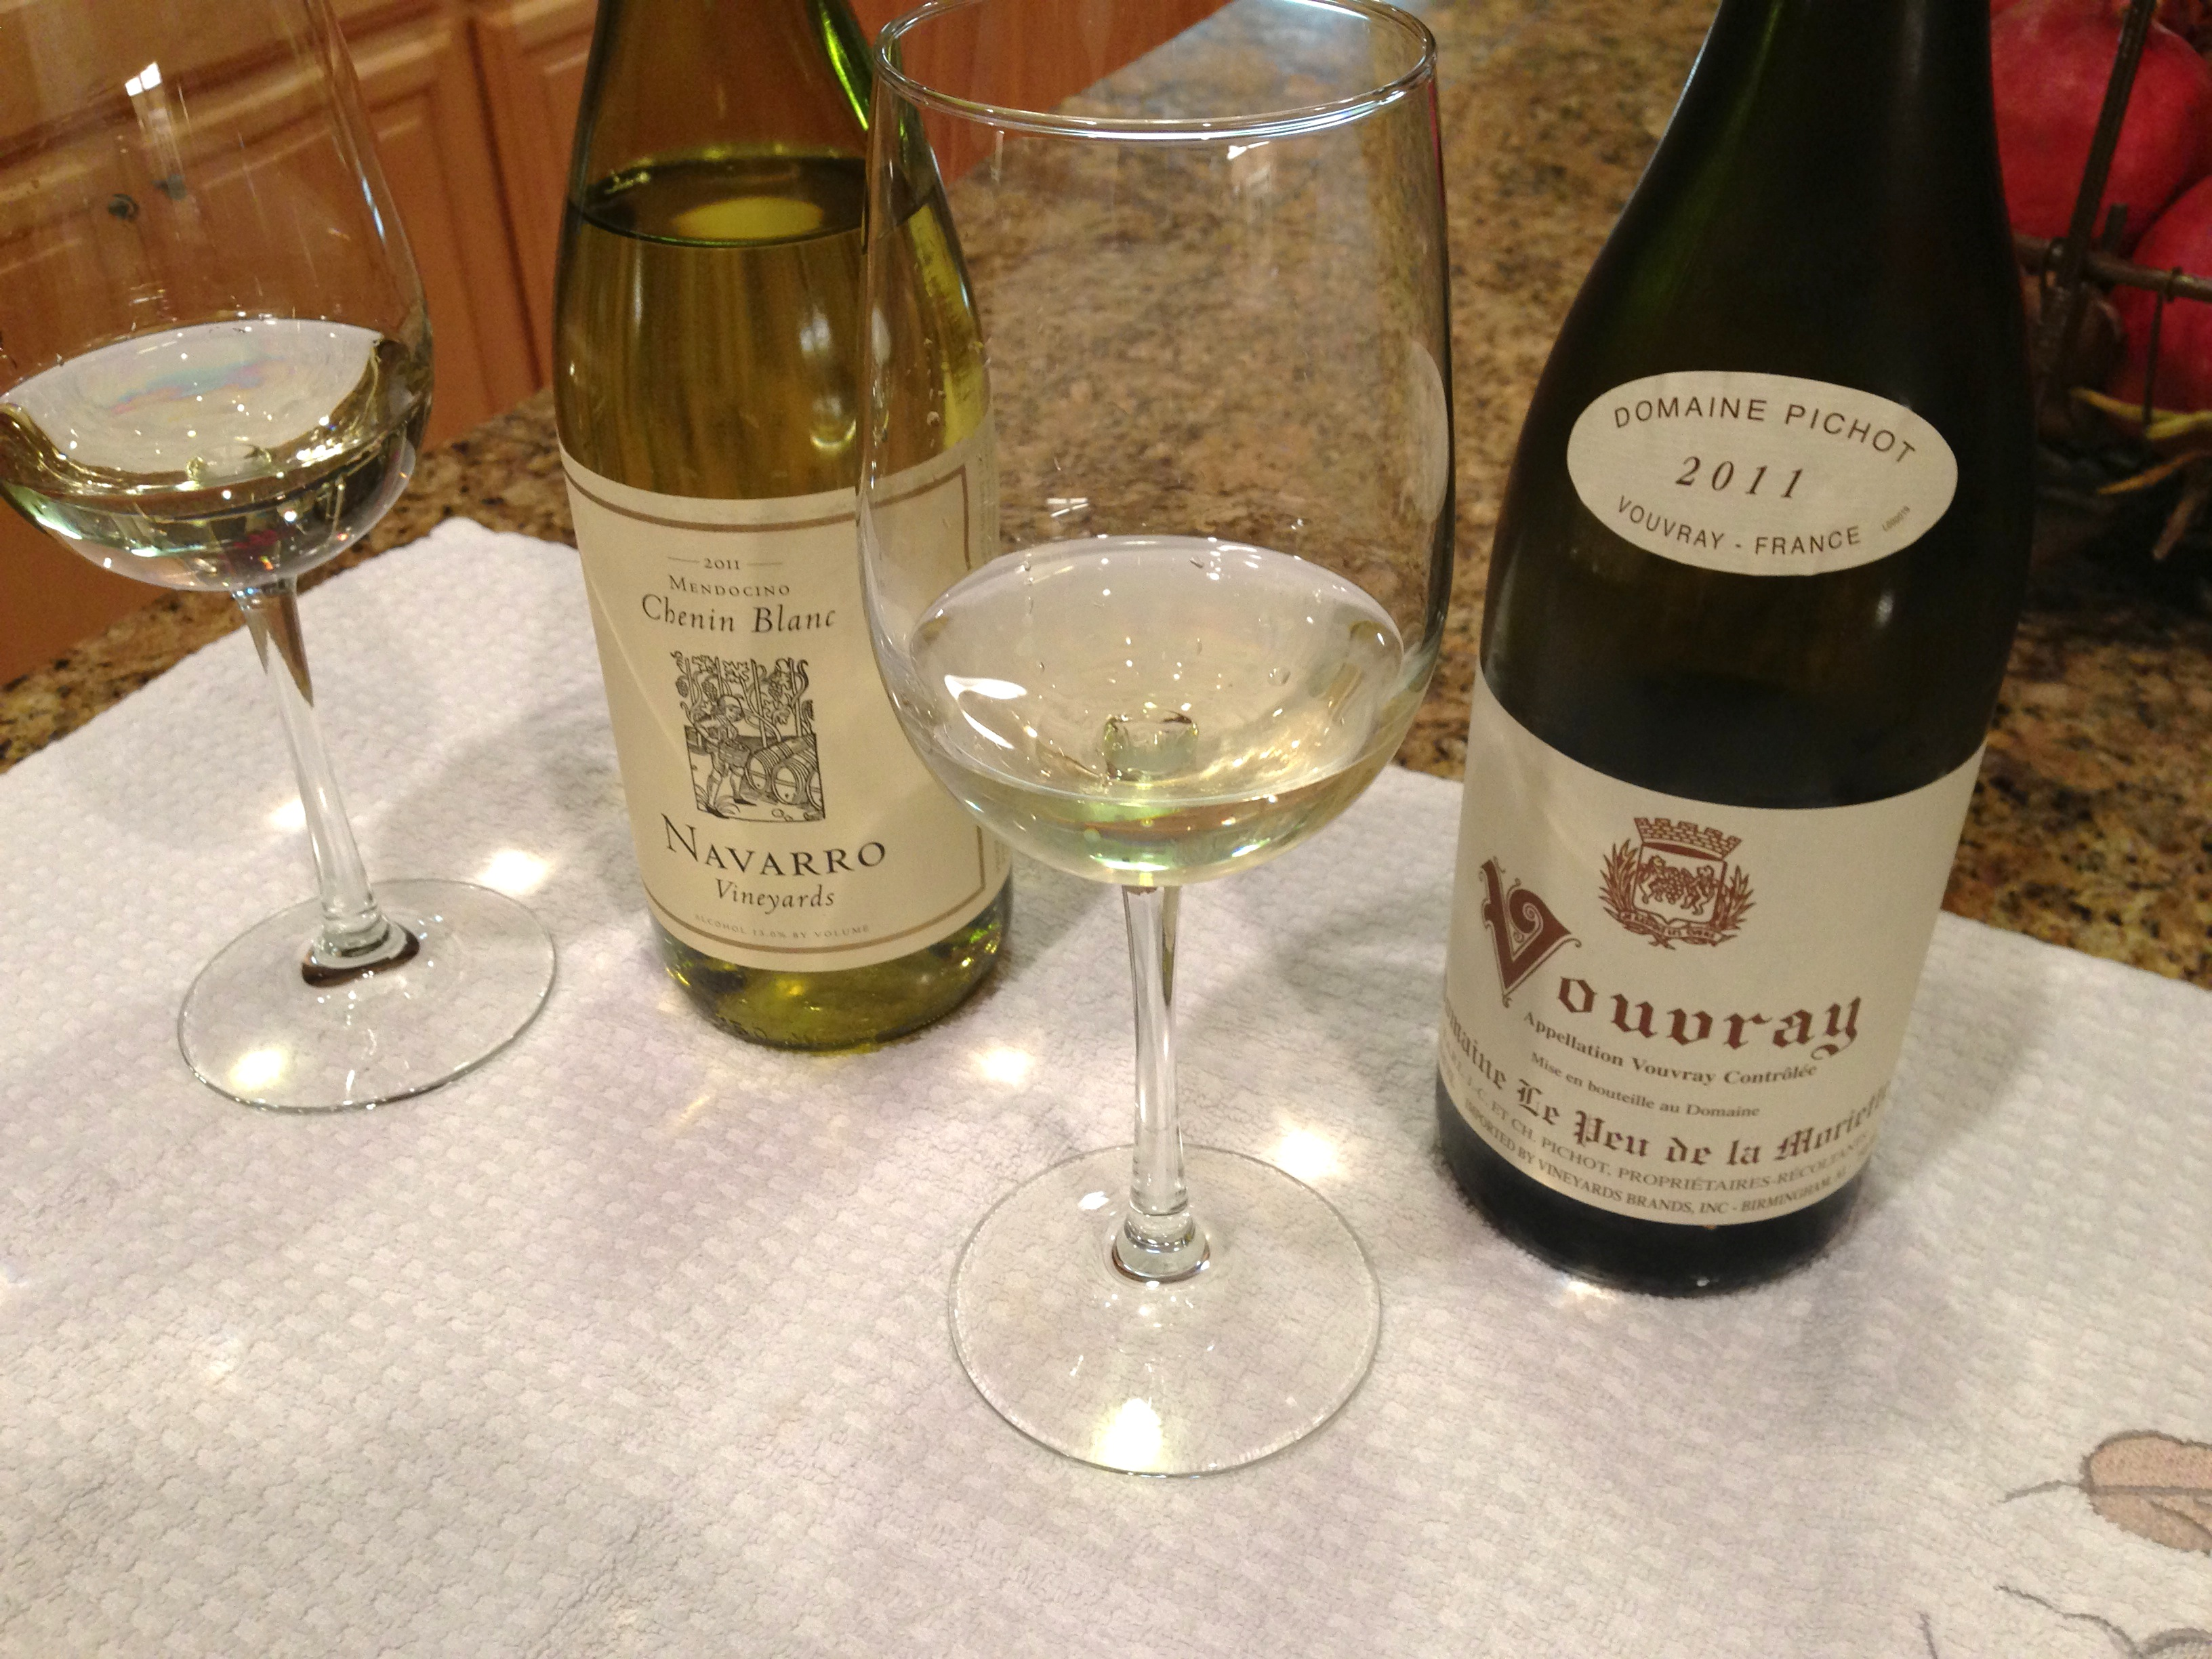 Two Chenin Blancs